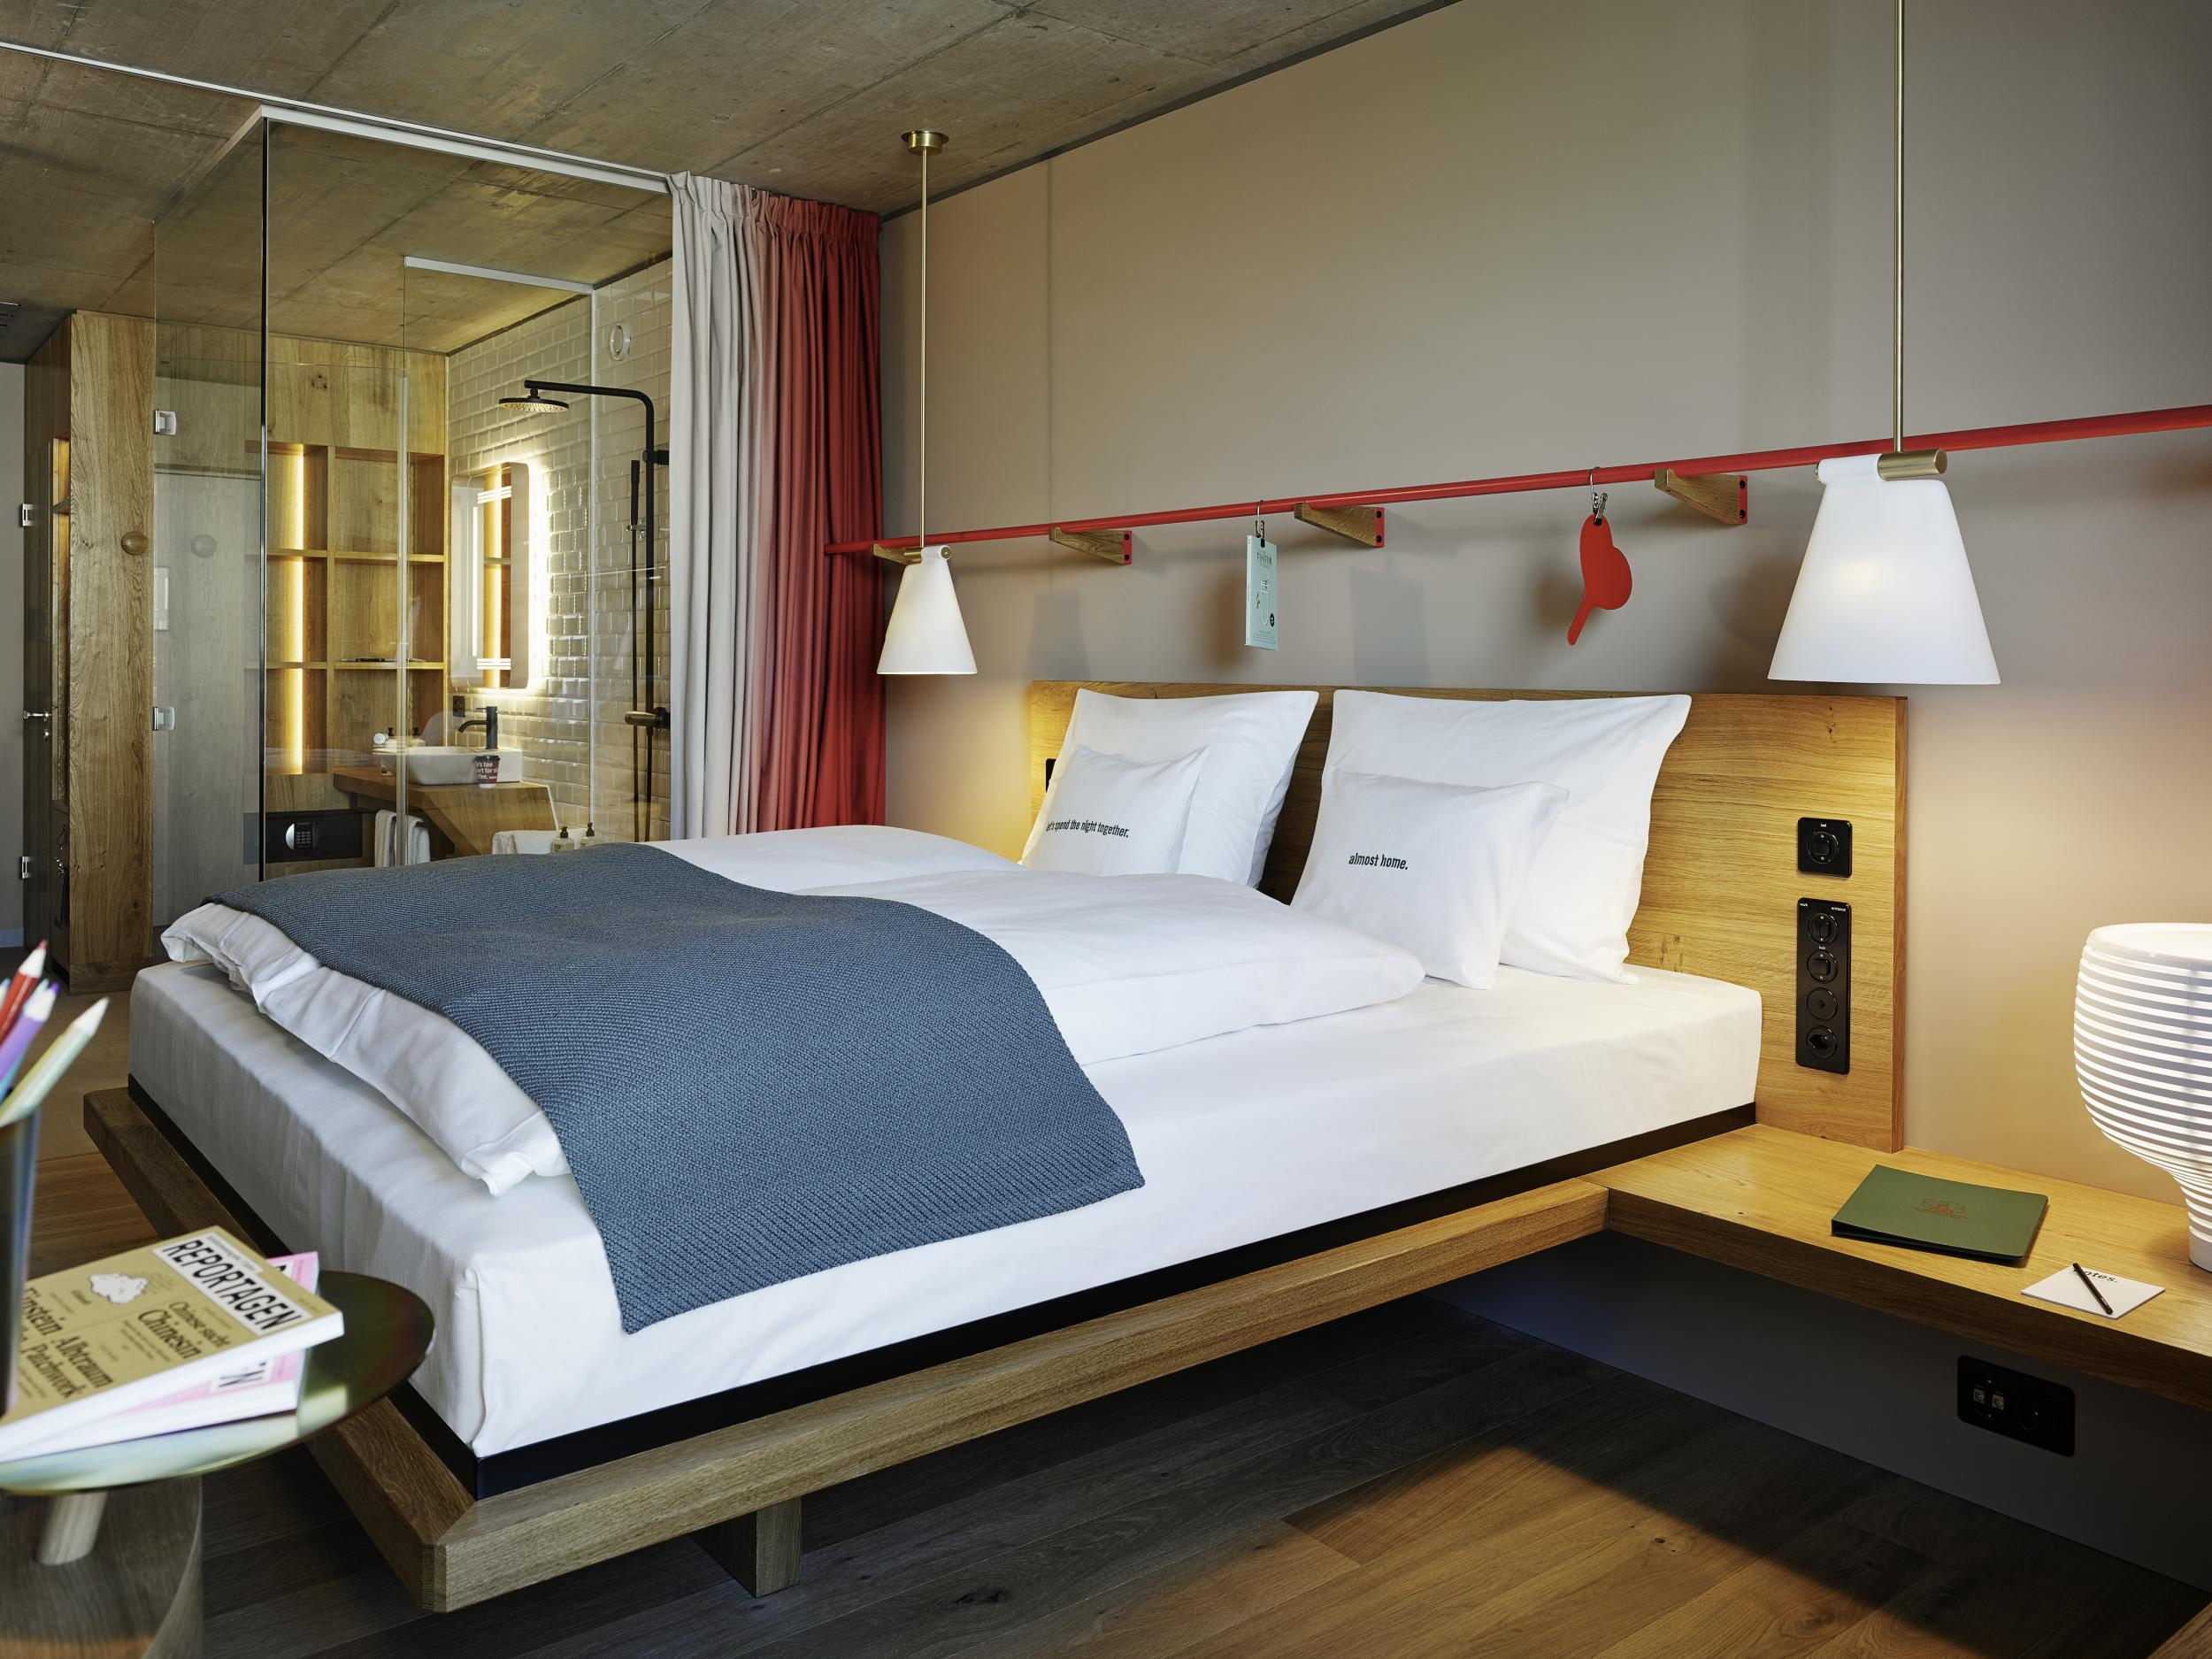 25hours hotel zurich langstrasse the hipster digs busting swiss stereotypes the independent